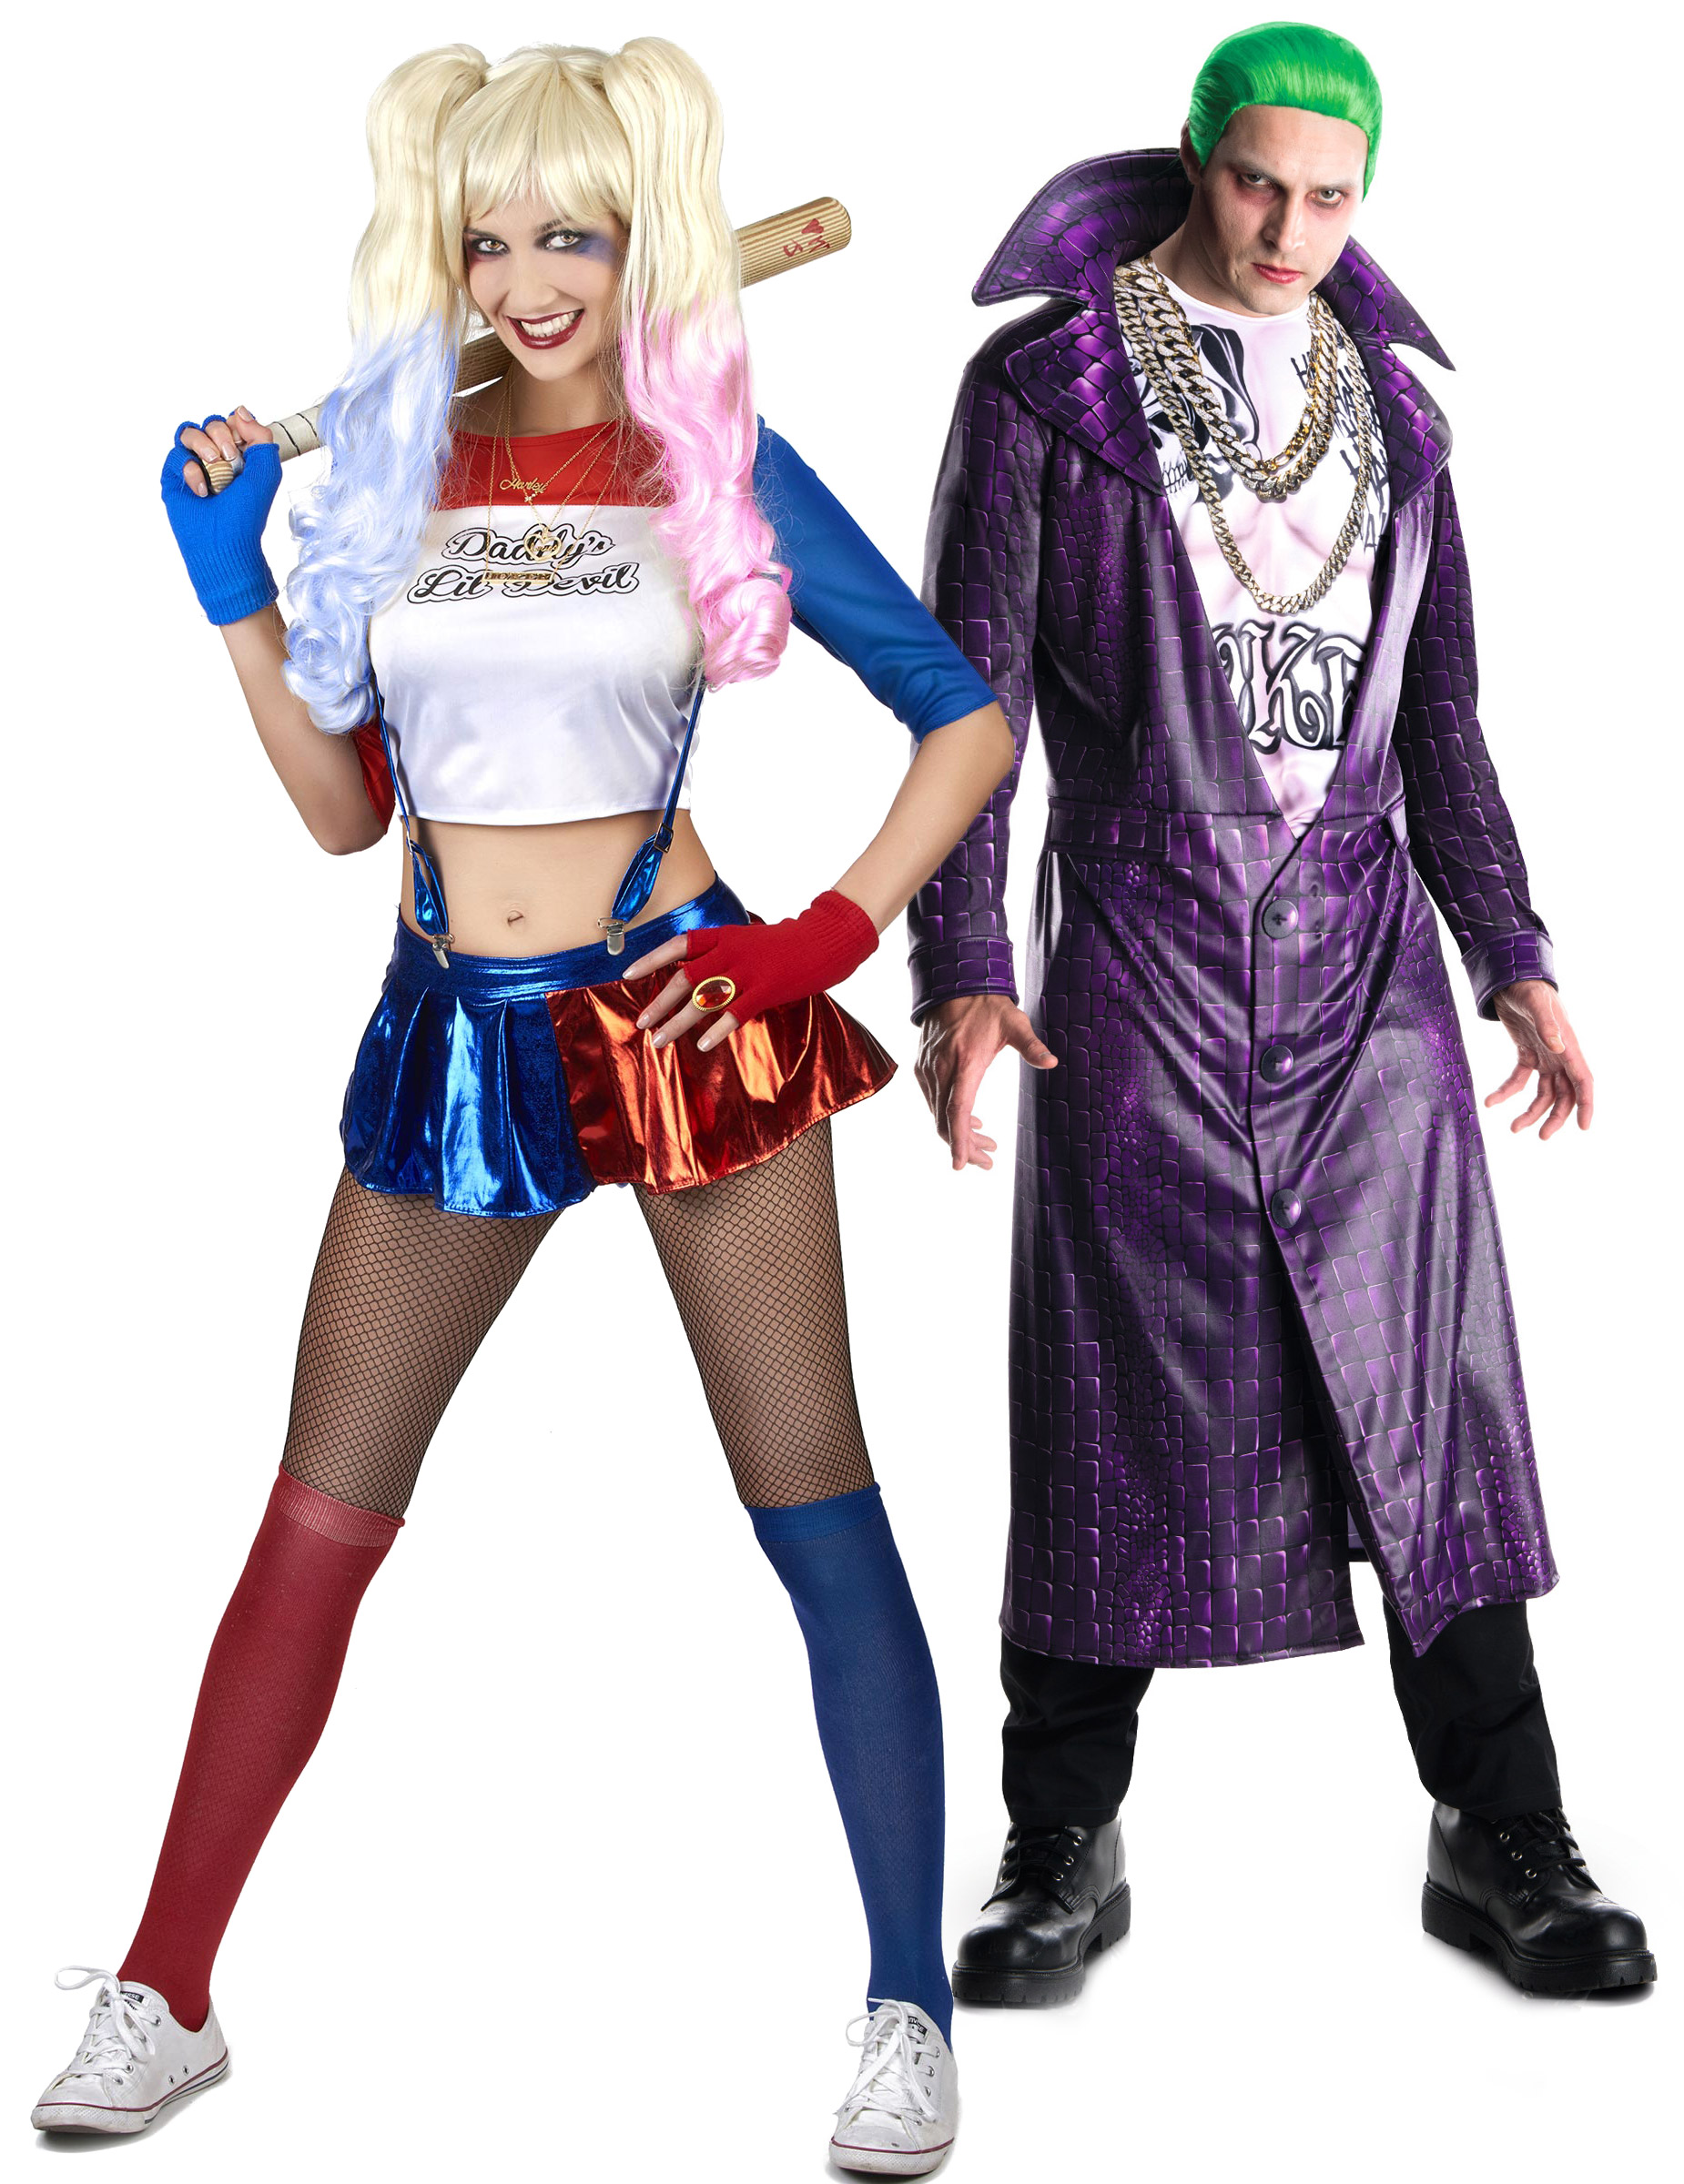 harley quinn und joker paarkost m fasching bunt g nstige faschings kost me bei karneval. Black Bedroom Furniture Sets. Home Design Ideas